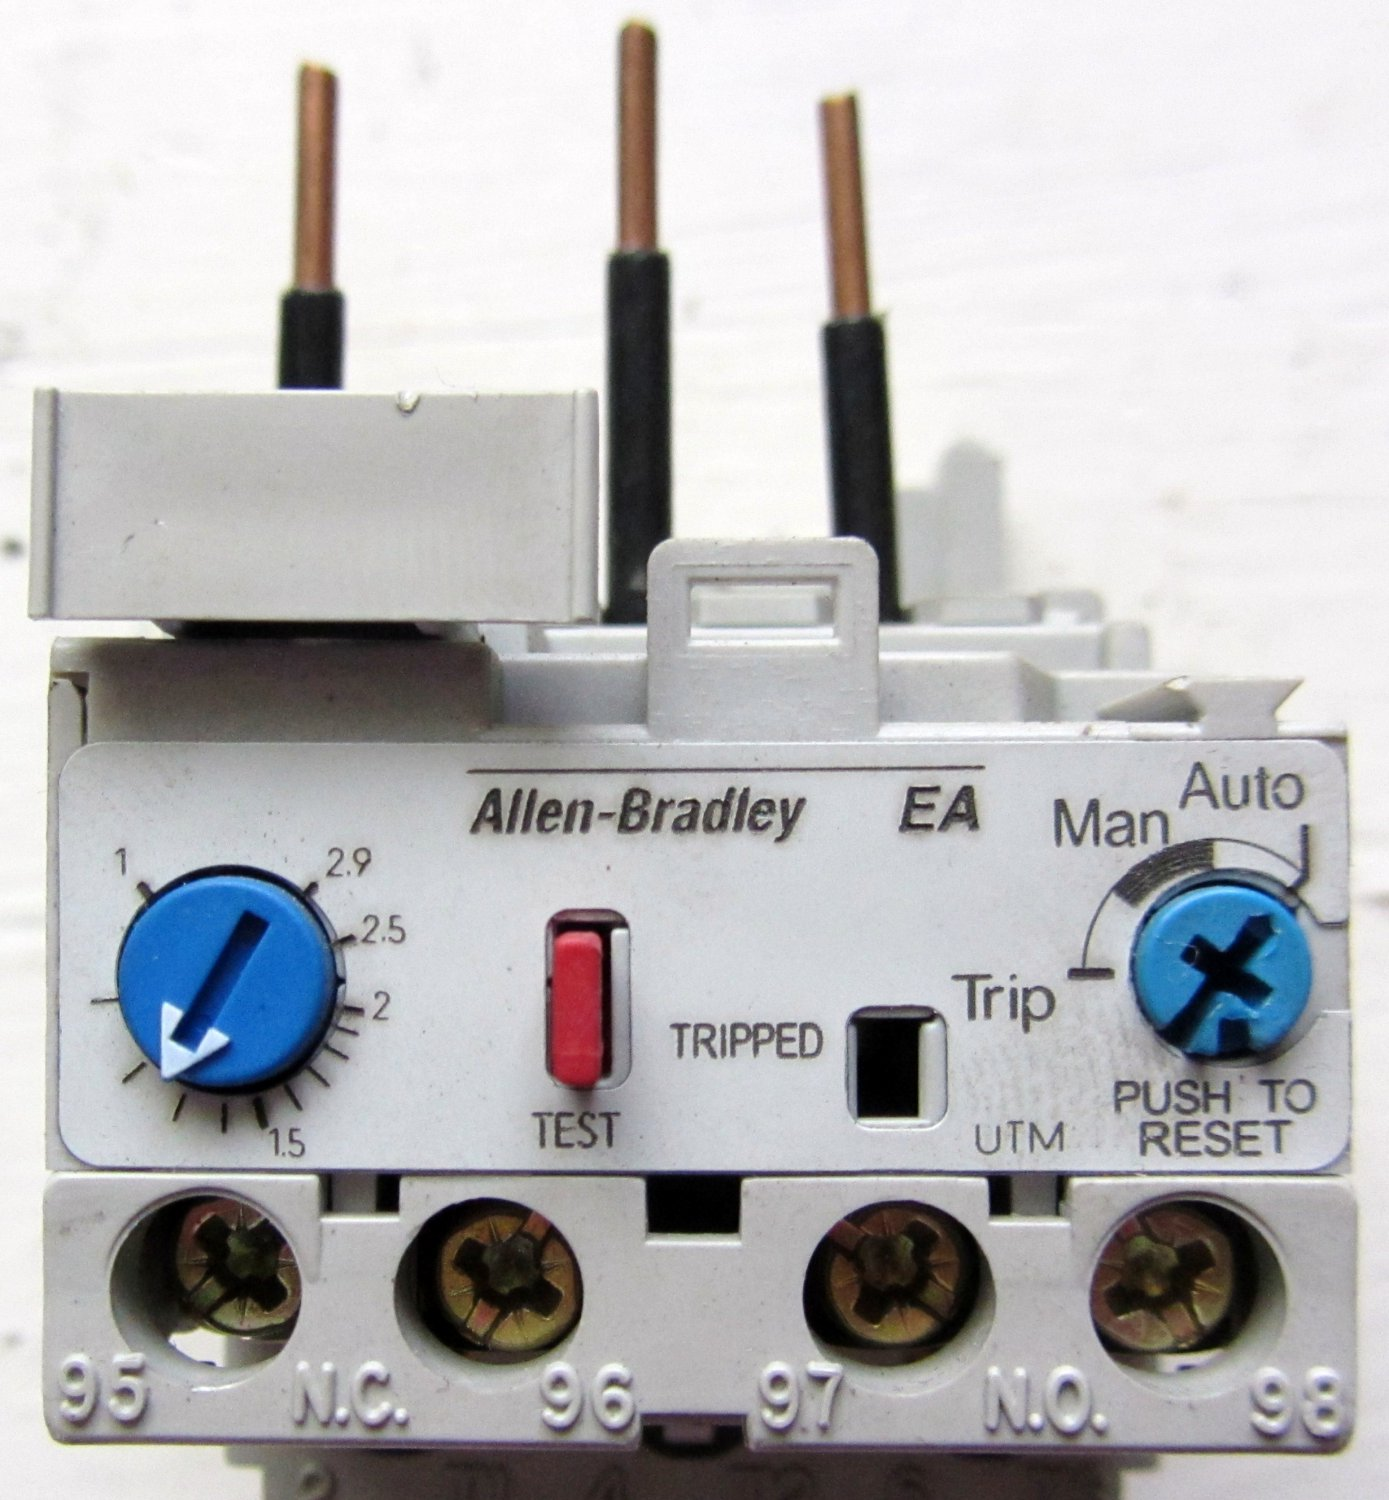 contactor and thermal overload relay wiring diagram intertherm mobile home electric furnace allen bradley 193 ea5db ser b 1 2 9 amp